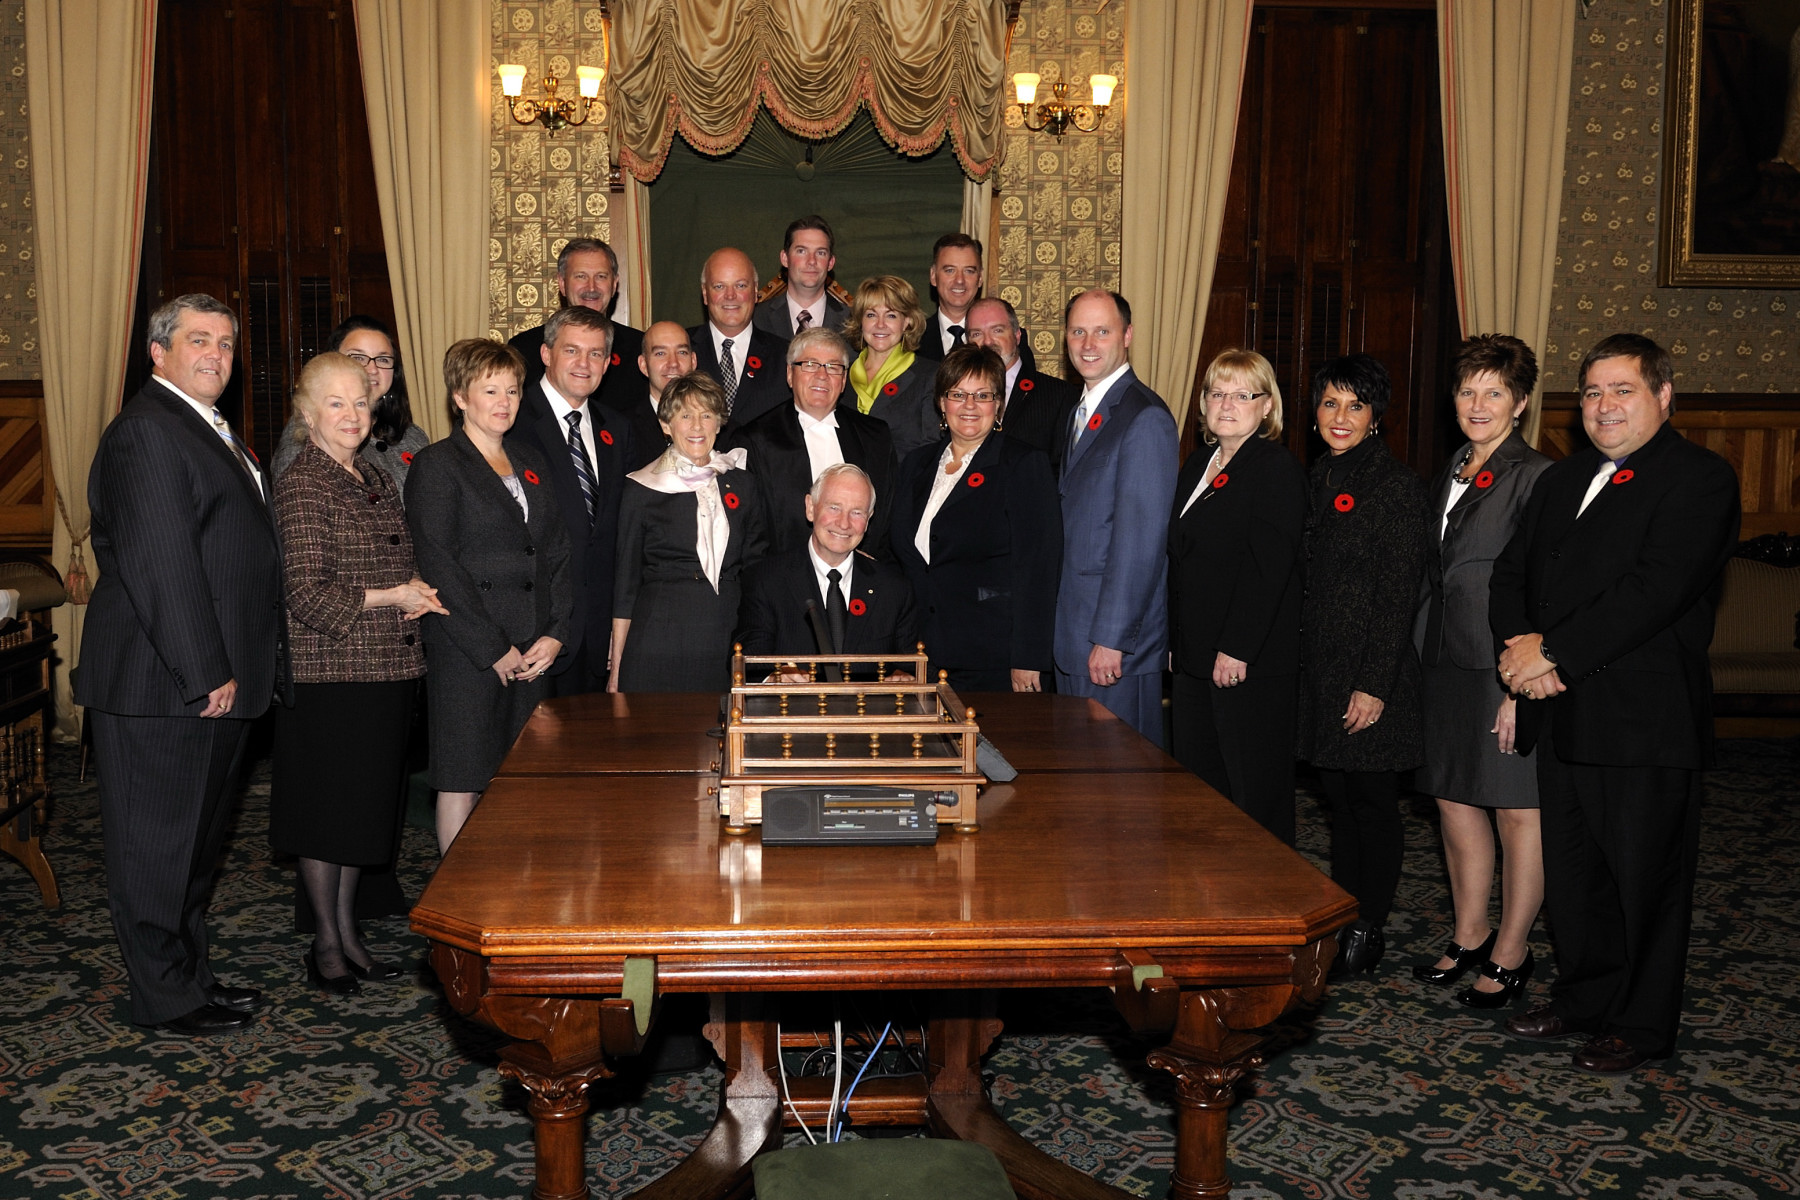 The Honourable David Alward, Premier of New Brunswick, introduced his 15 Cabinet members to Their Excellencies. The introduction was followed by Their Excellencies signing the guest book.